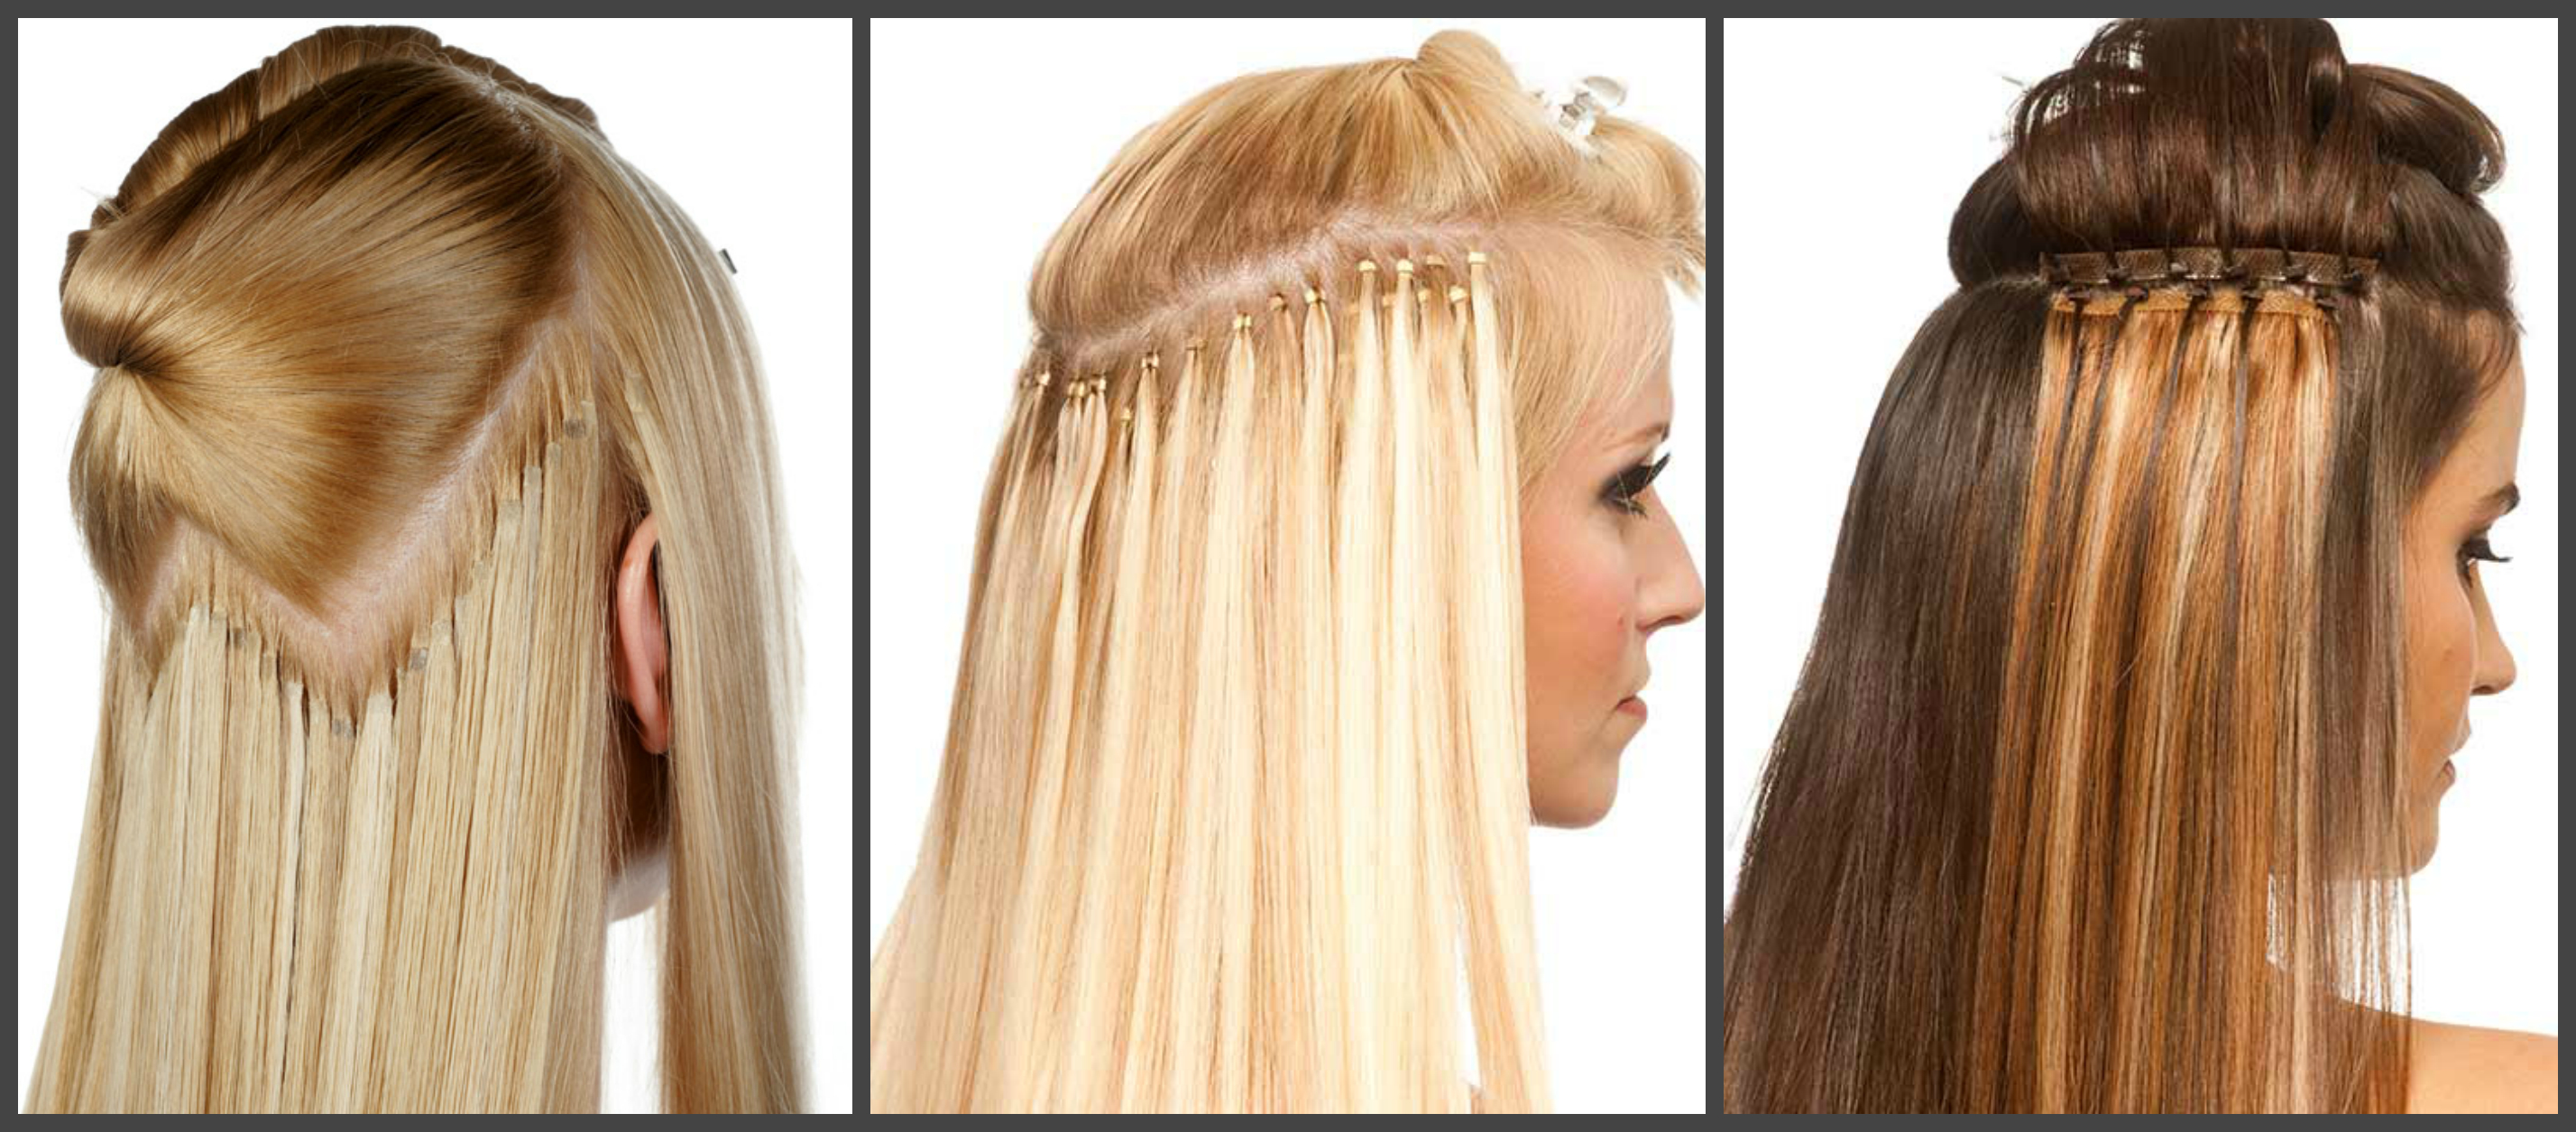 Hair Extensions Pros Cons Royal Forvita